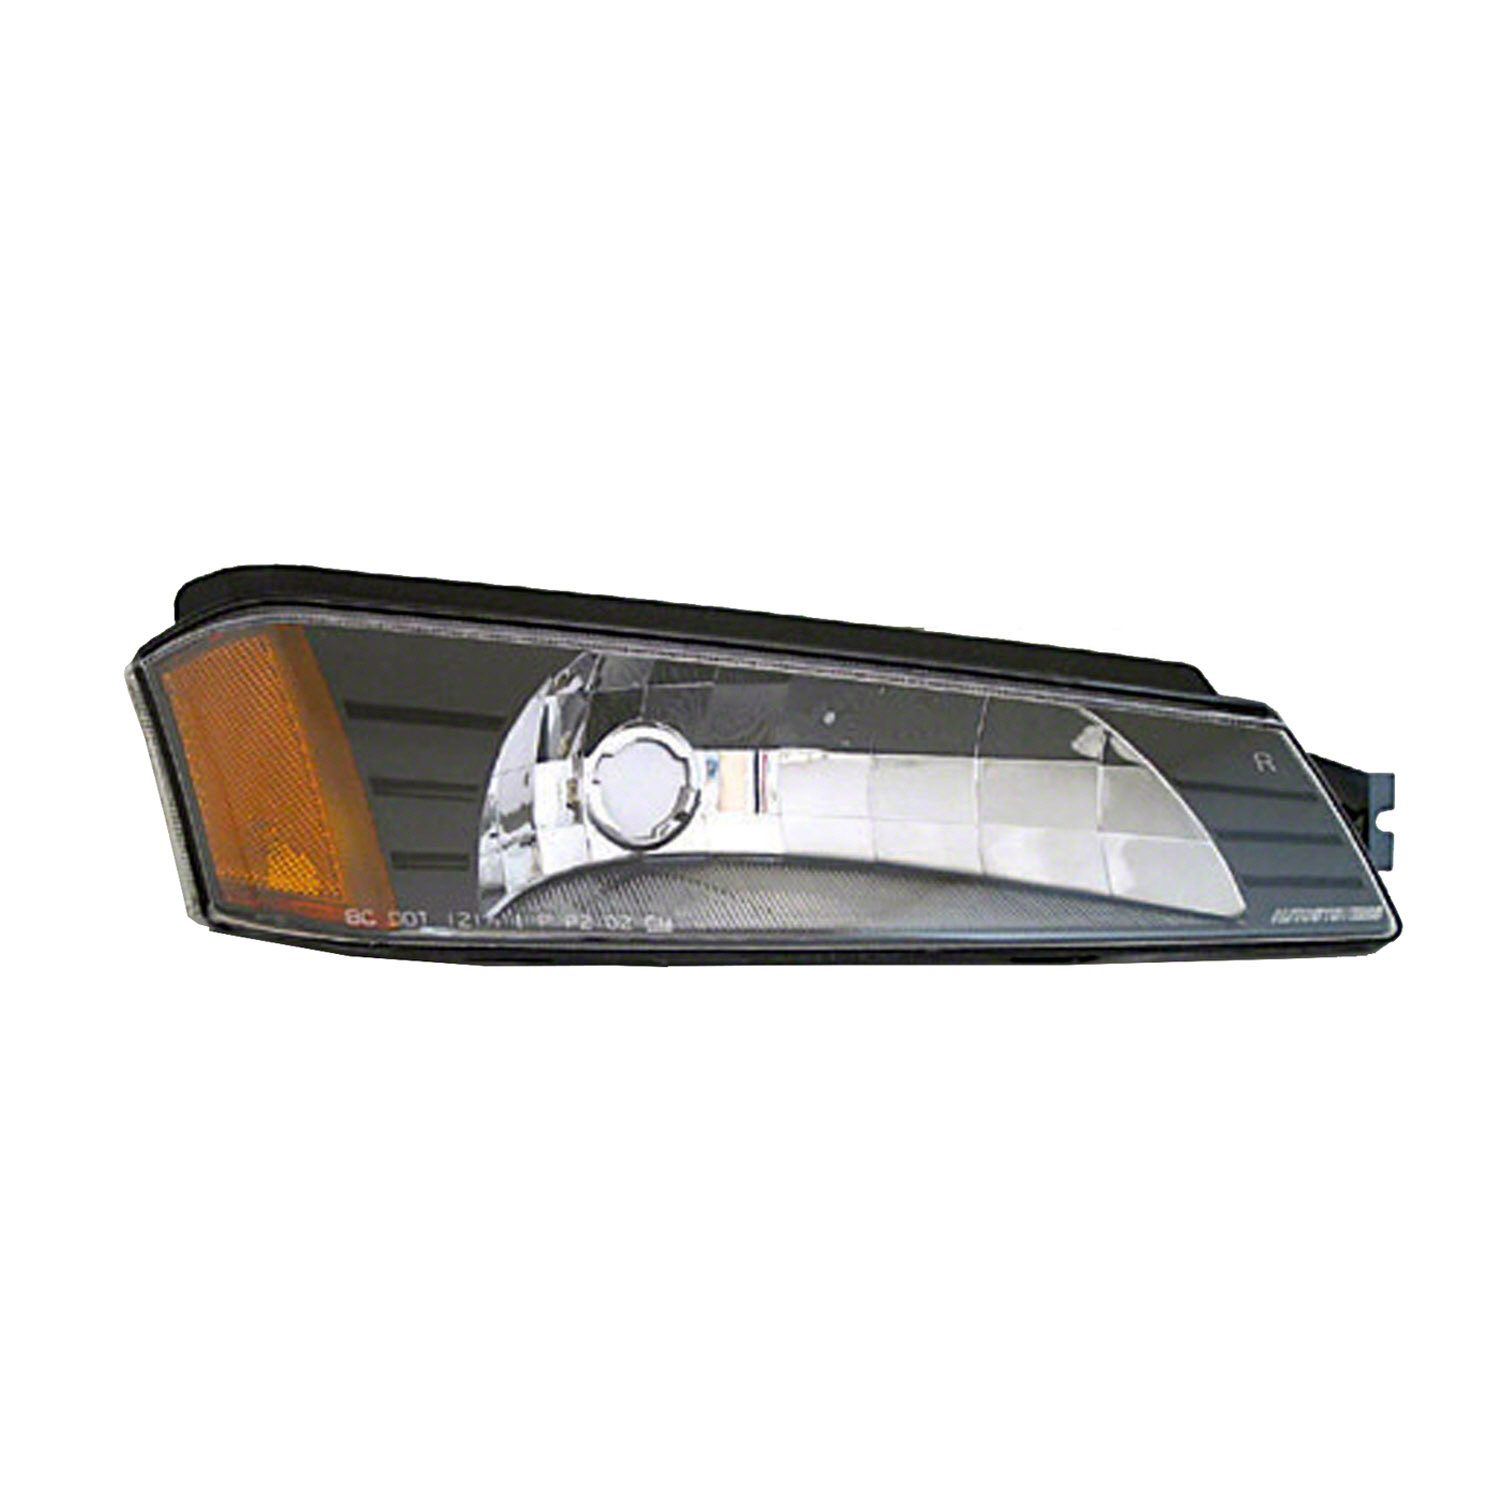 New Passenger Side Over Head Lamp Textured Clad Parking / Signal Lamp 15077337-V